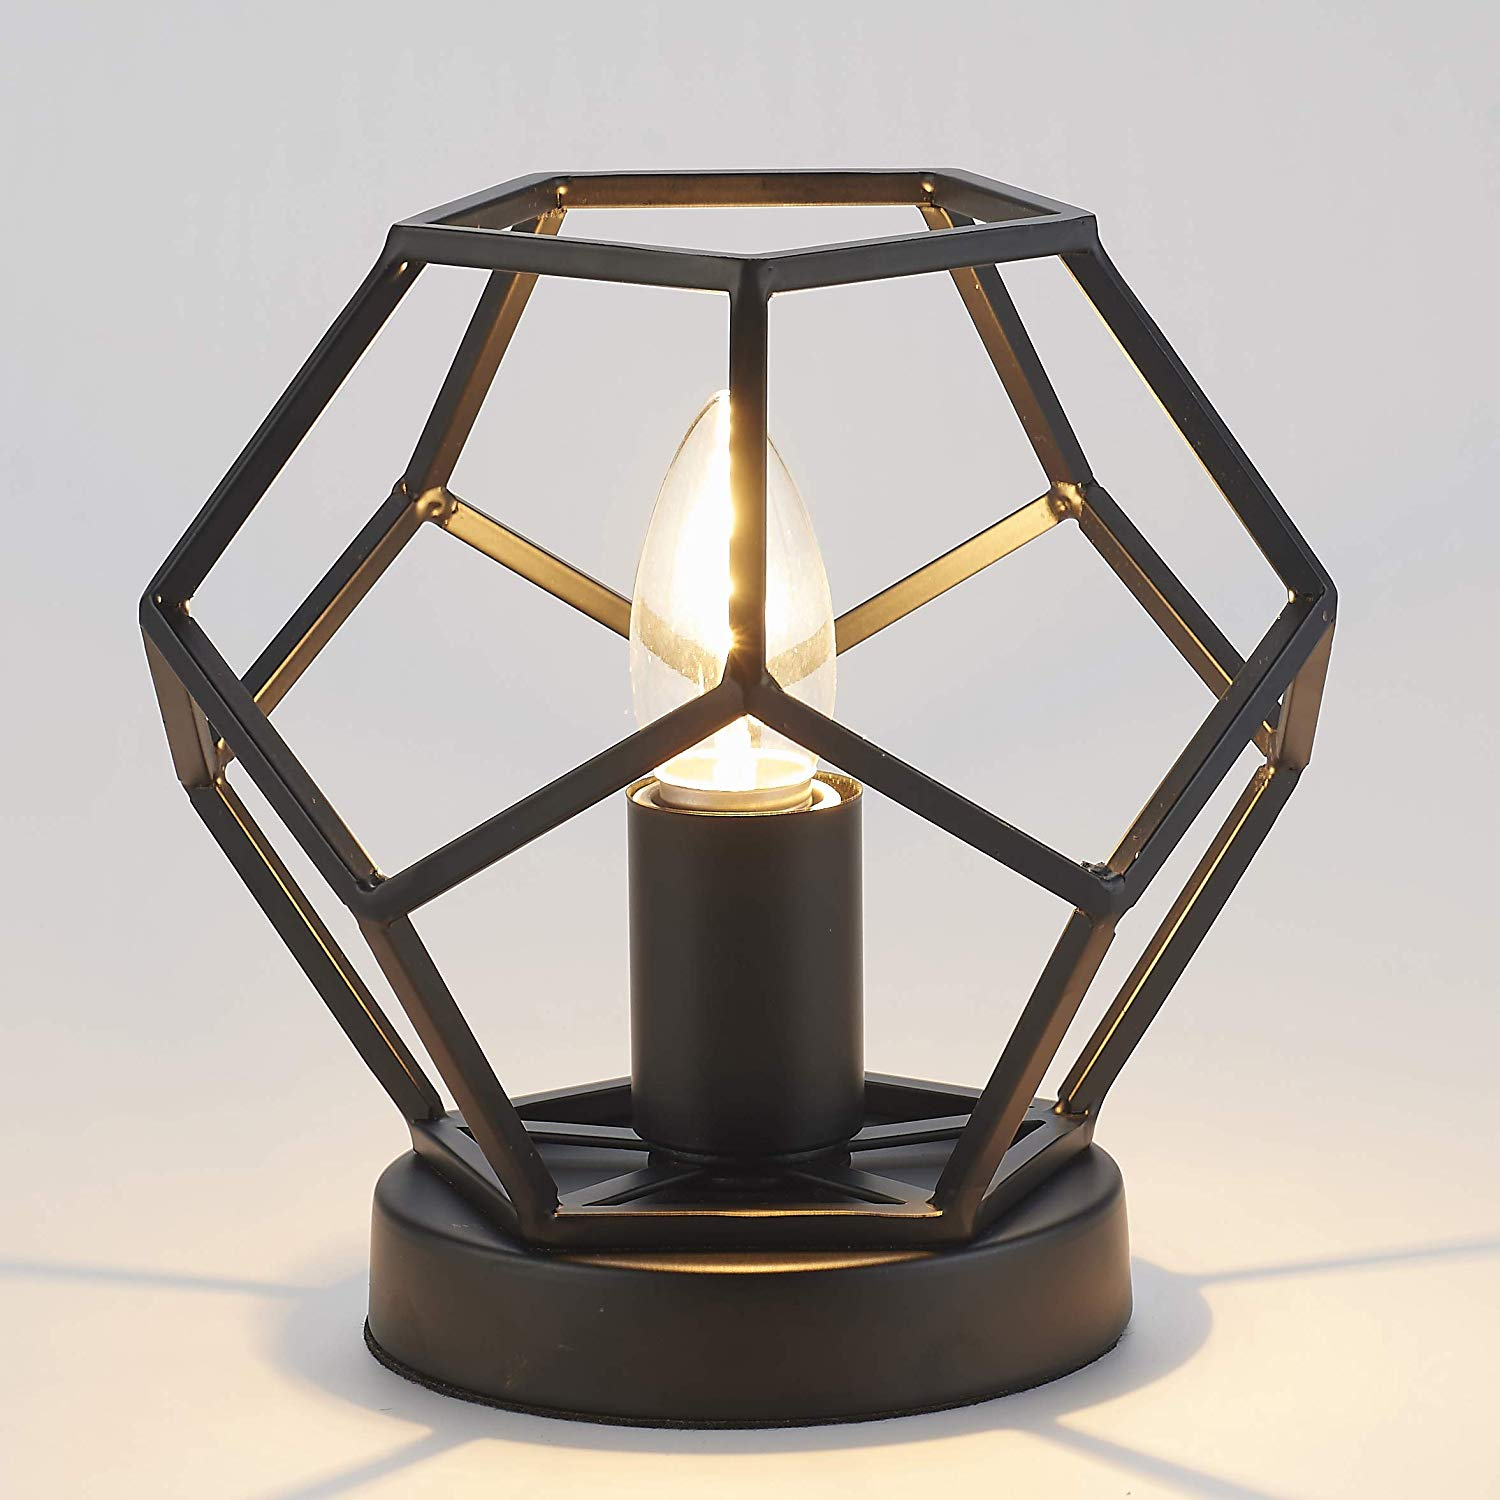 metal basket base table lamp black football shape accent lighting tall round led lights for home granite top end tables corner dining set teal decor living room furniture small